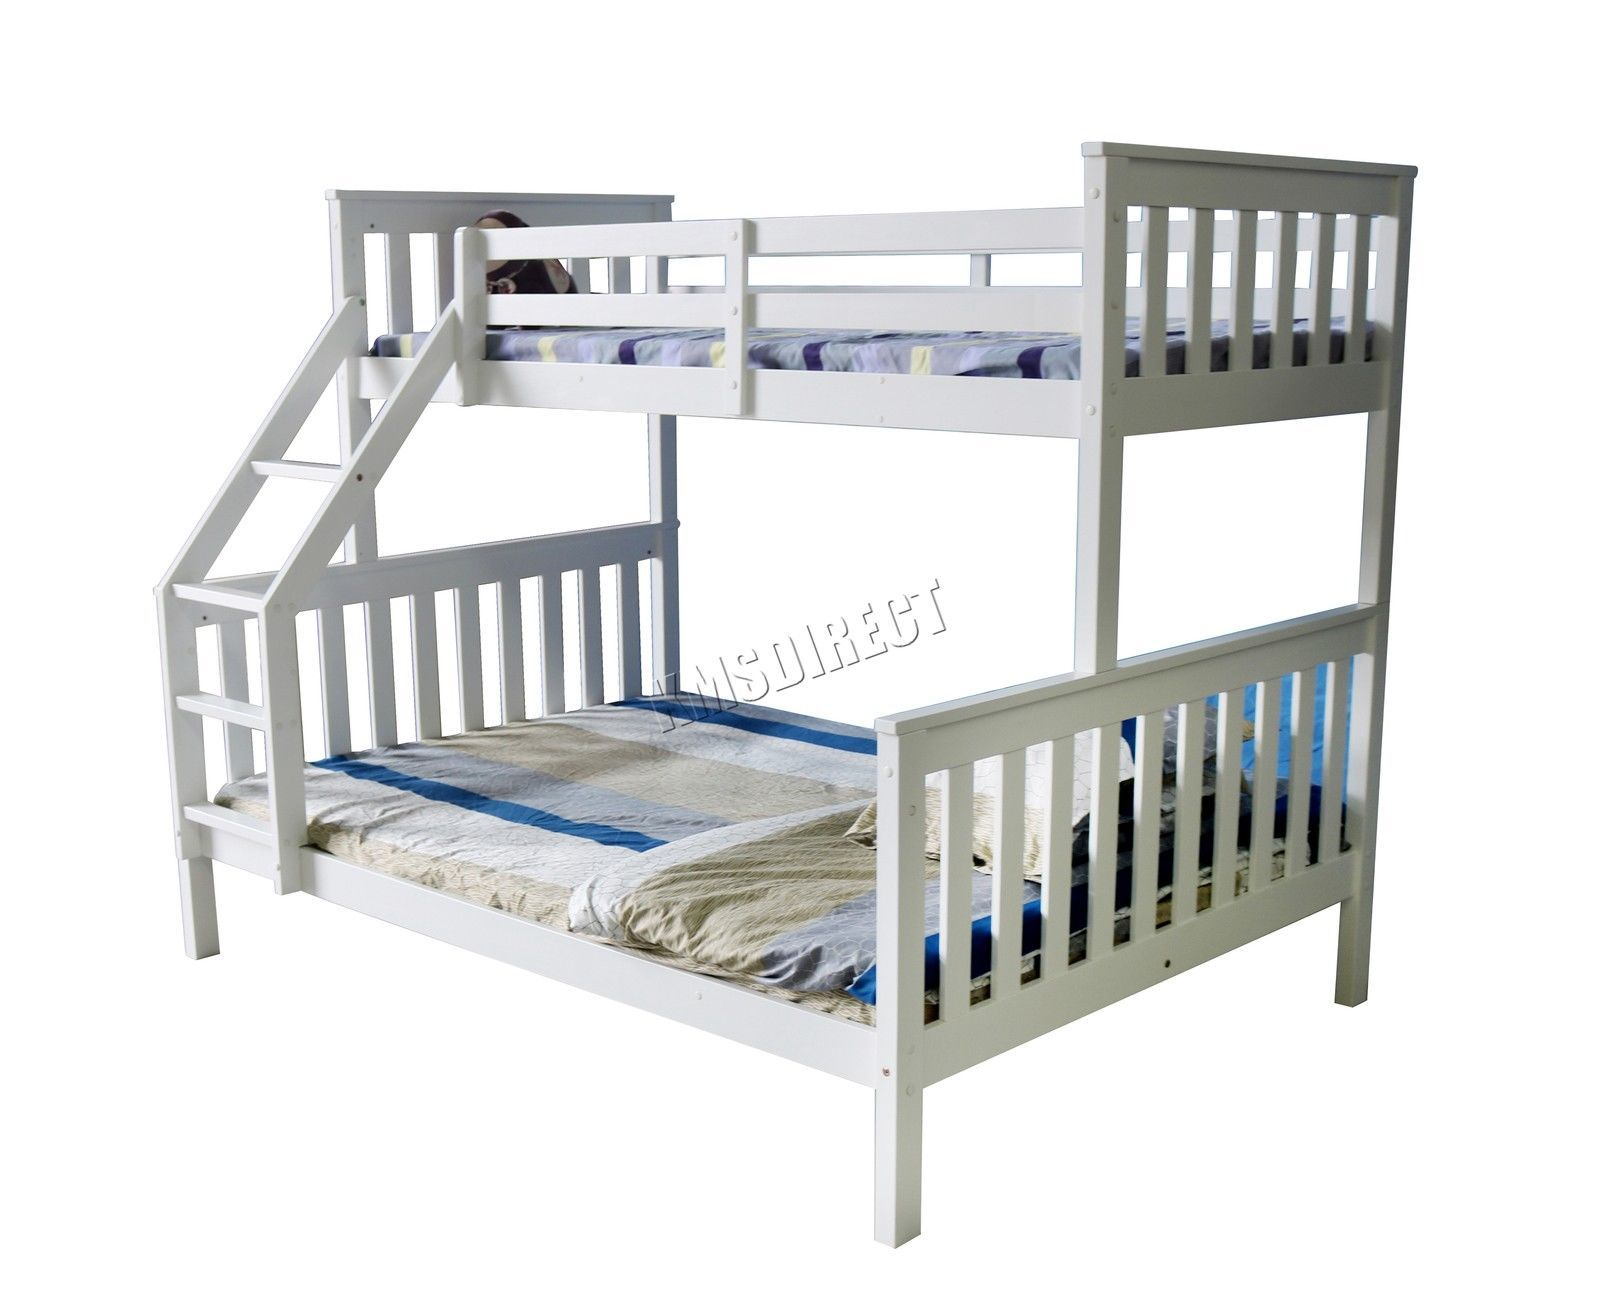 Foxhunter Bunk Bed Wooden Frame Children Kids Triple Sleeper No Mattress White Ebay